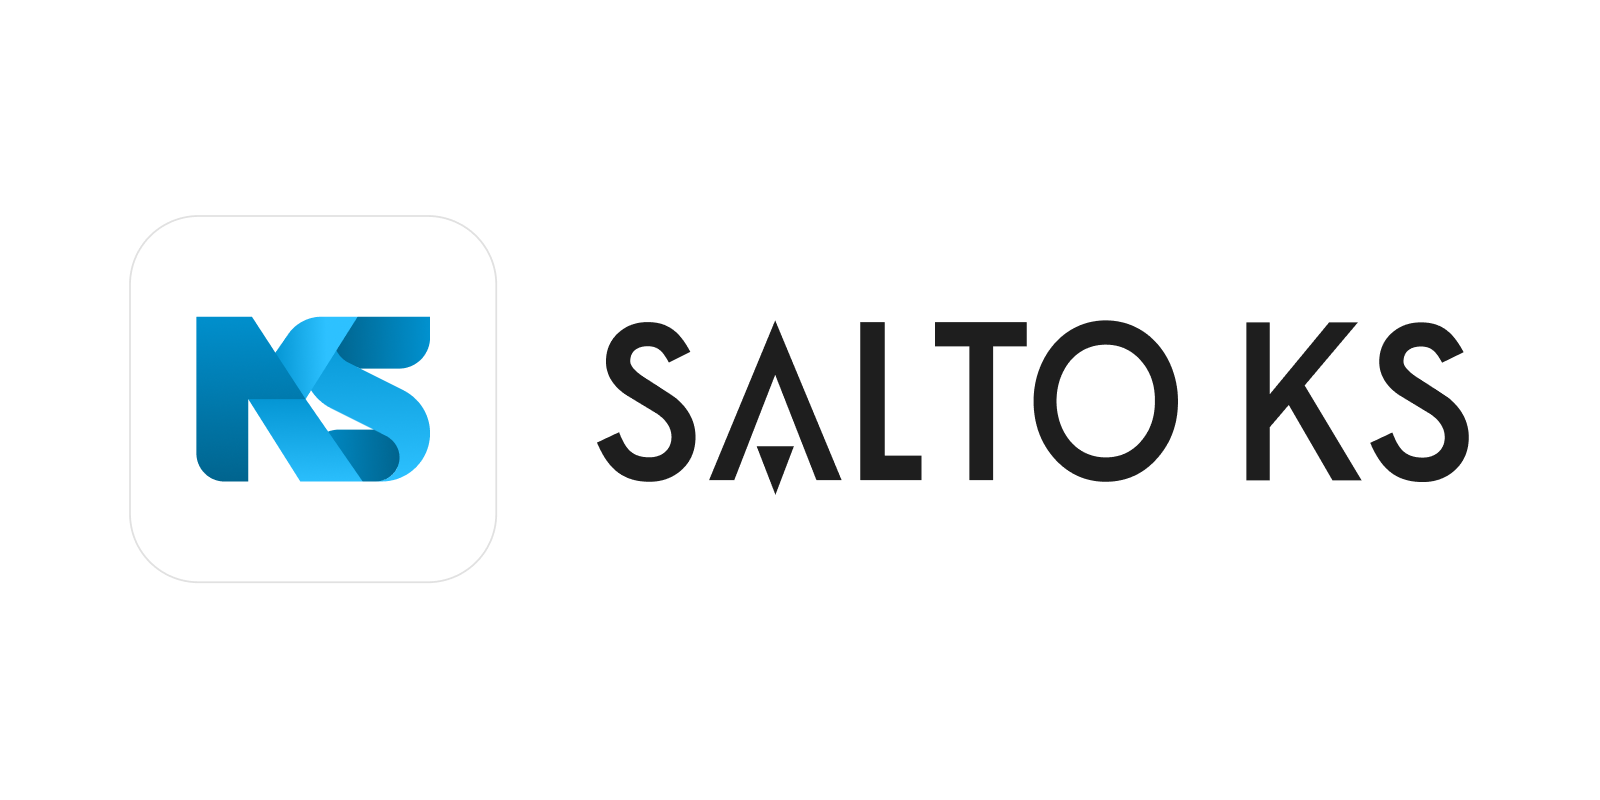 SALTO KS Logotype